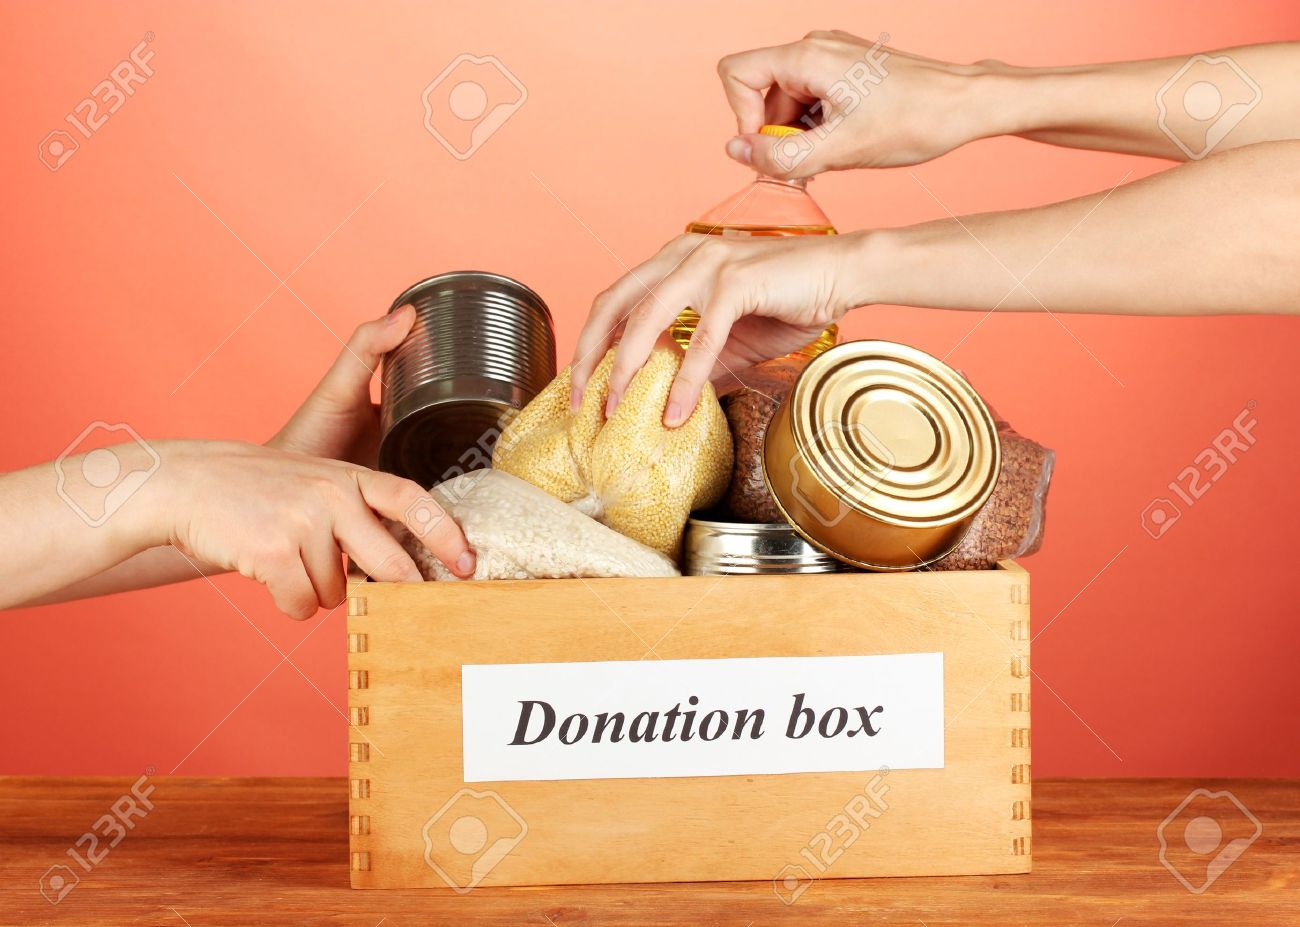 Donation box with food on red background close-up Stock Photo - 15385746